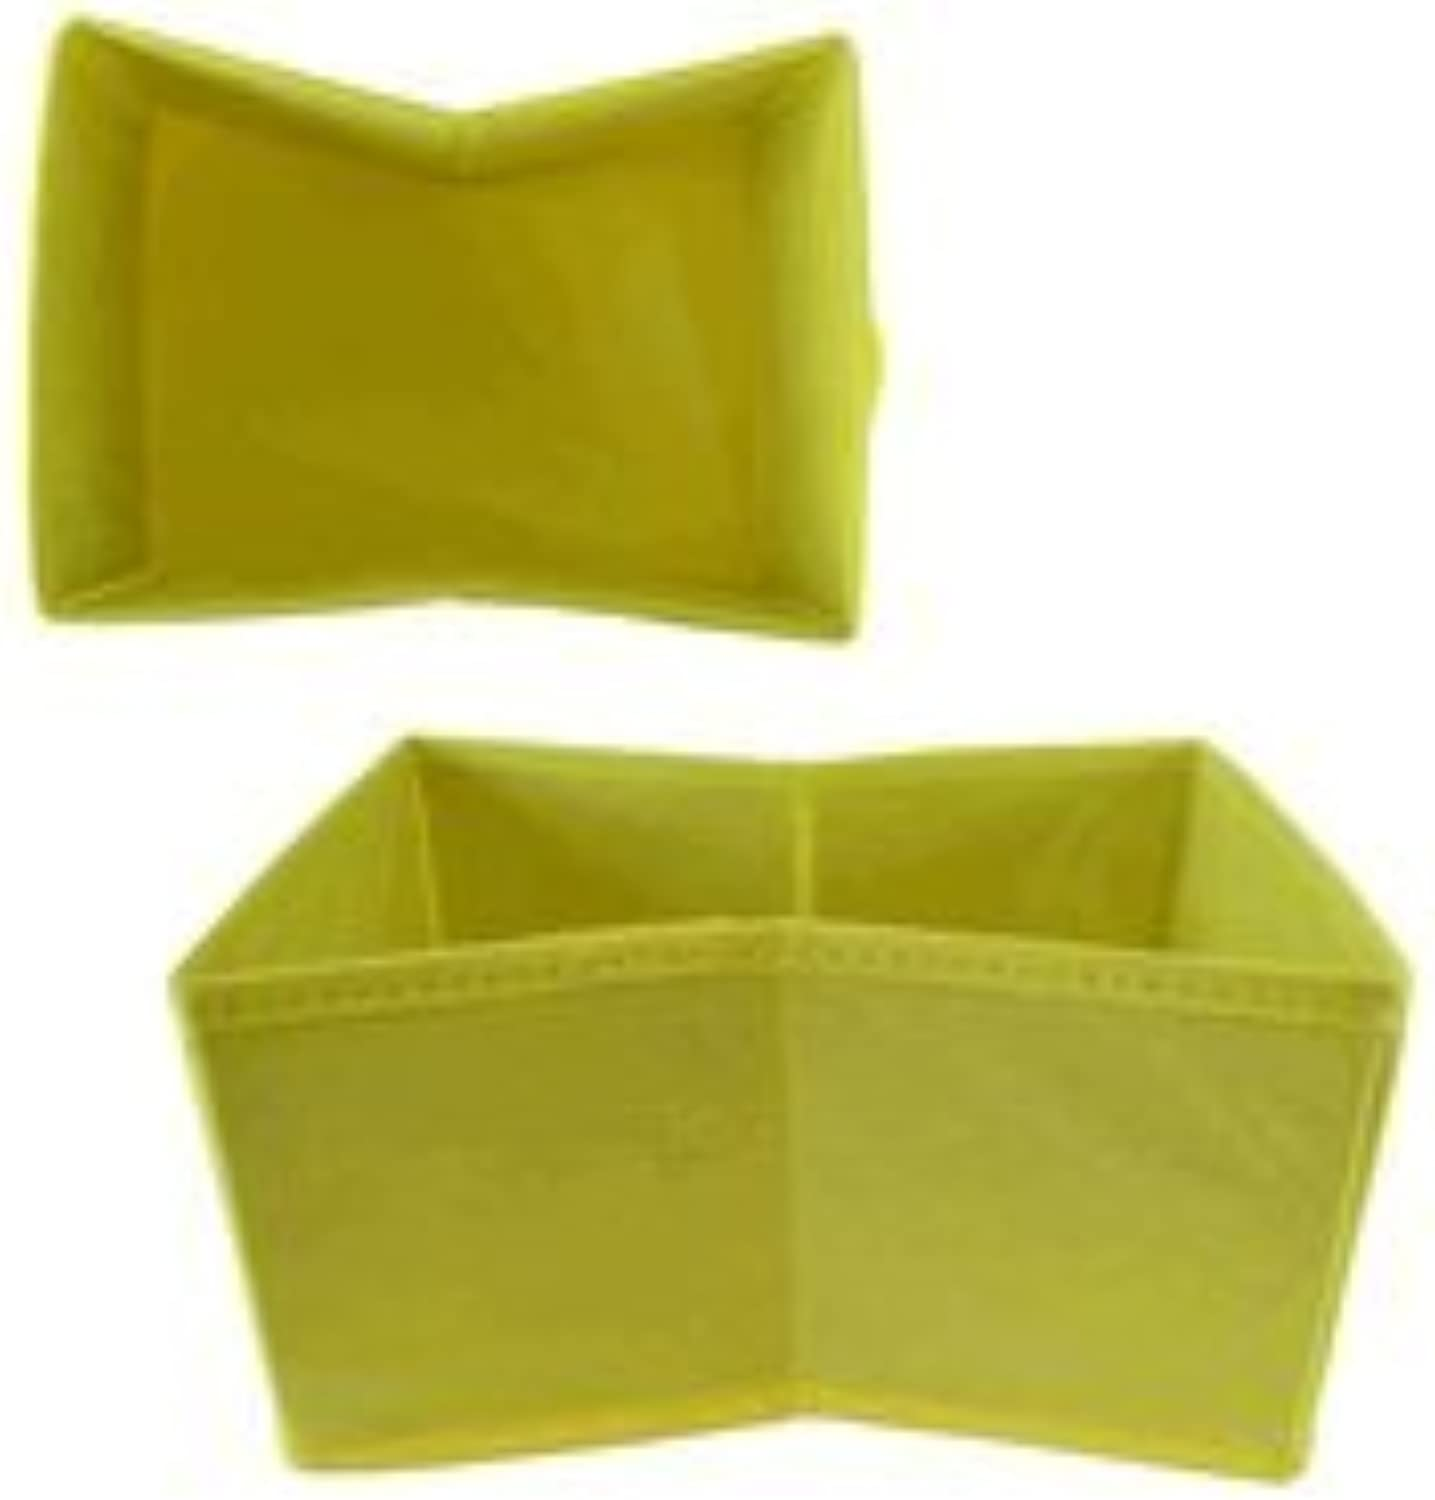 Storage Box Yellow - Fold Away Storage Box